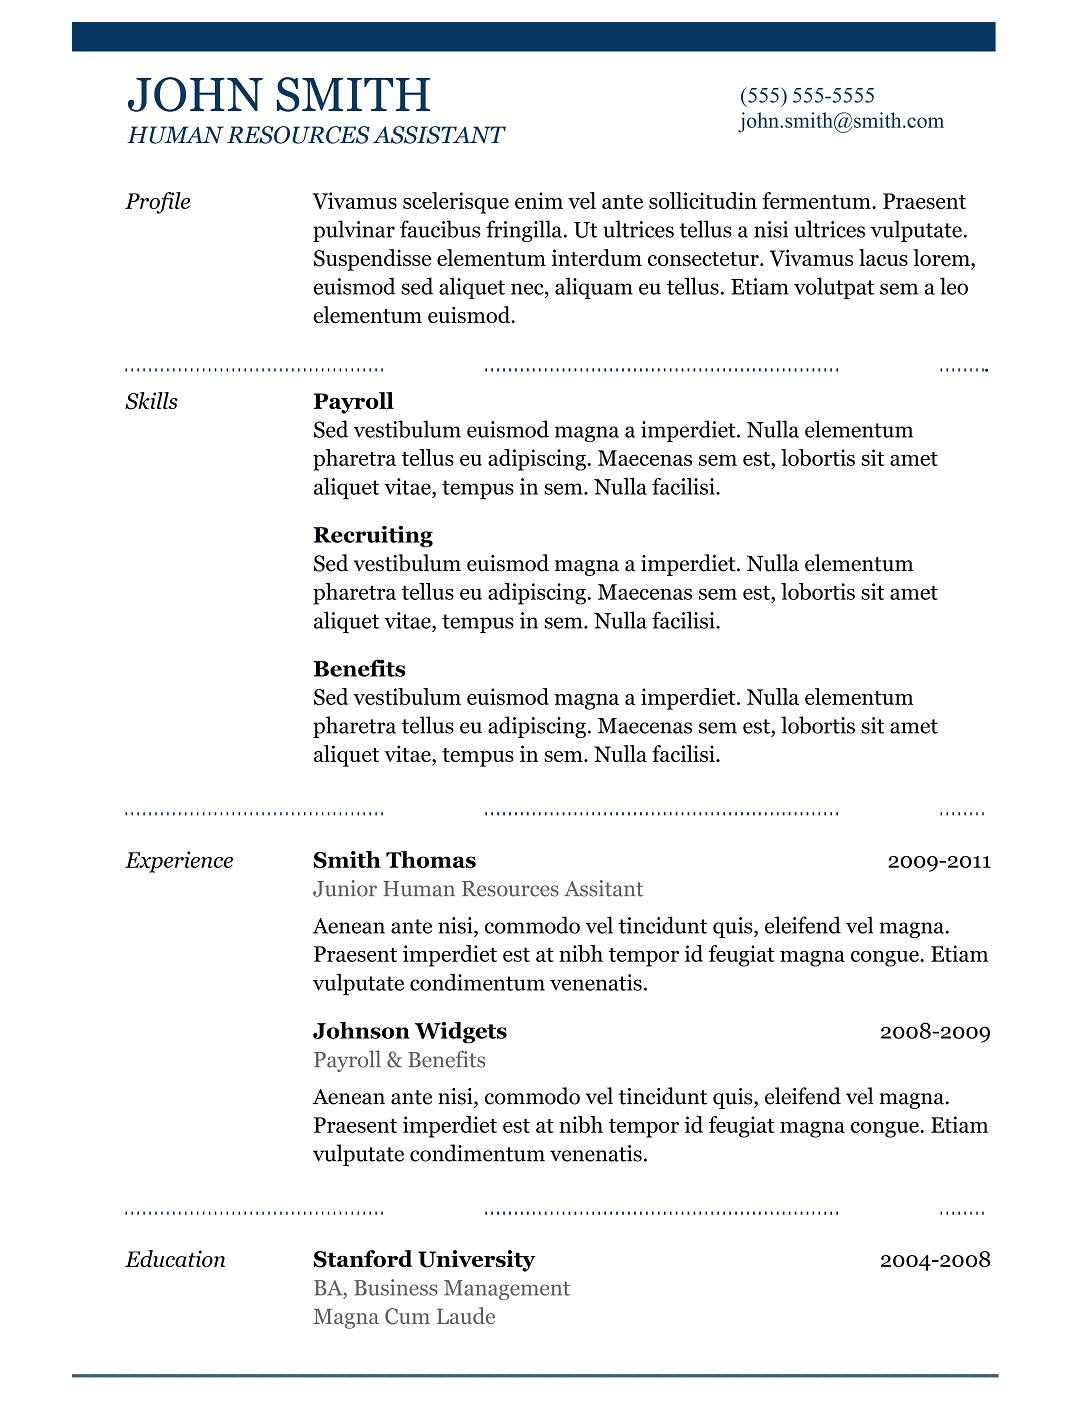 9 Best Free Resume Templates Download For Freshers  Best. Resume Maker Service. Ejemplo De Curriculum Vitae De Maestra Jardinera. Cover Letter For Learnership With No Experience. Resume Definition Example. Resume Example For Internship. Exemple Of Curriculum Vitae In English. Resume For Teacher Leaving Education. Letter Of Application Job